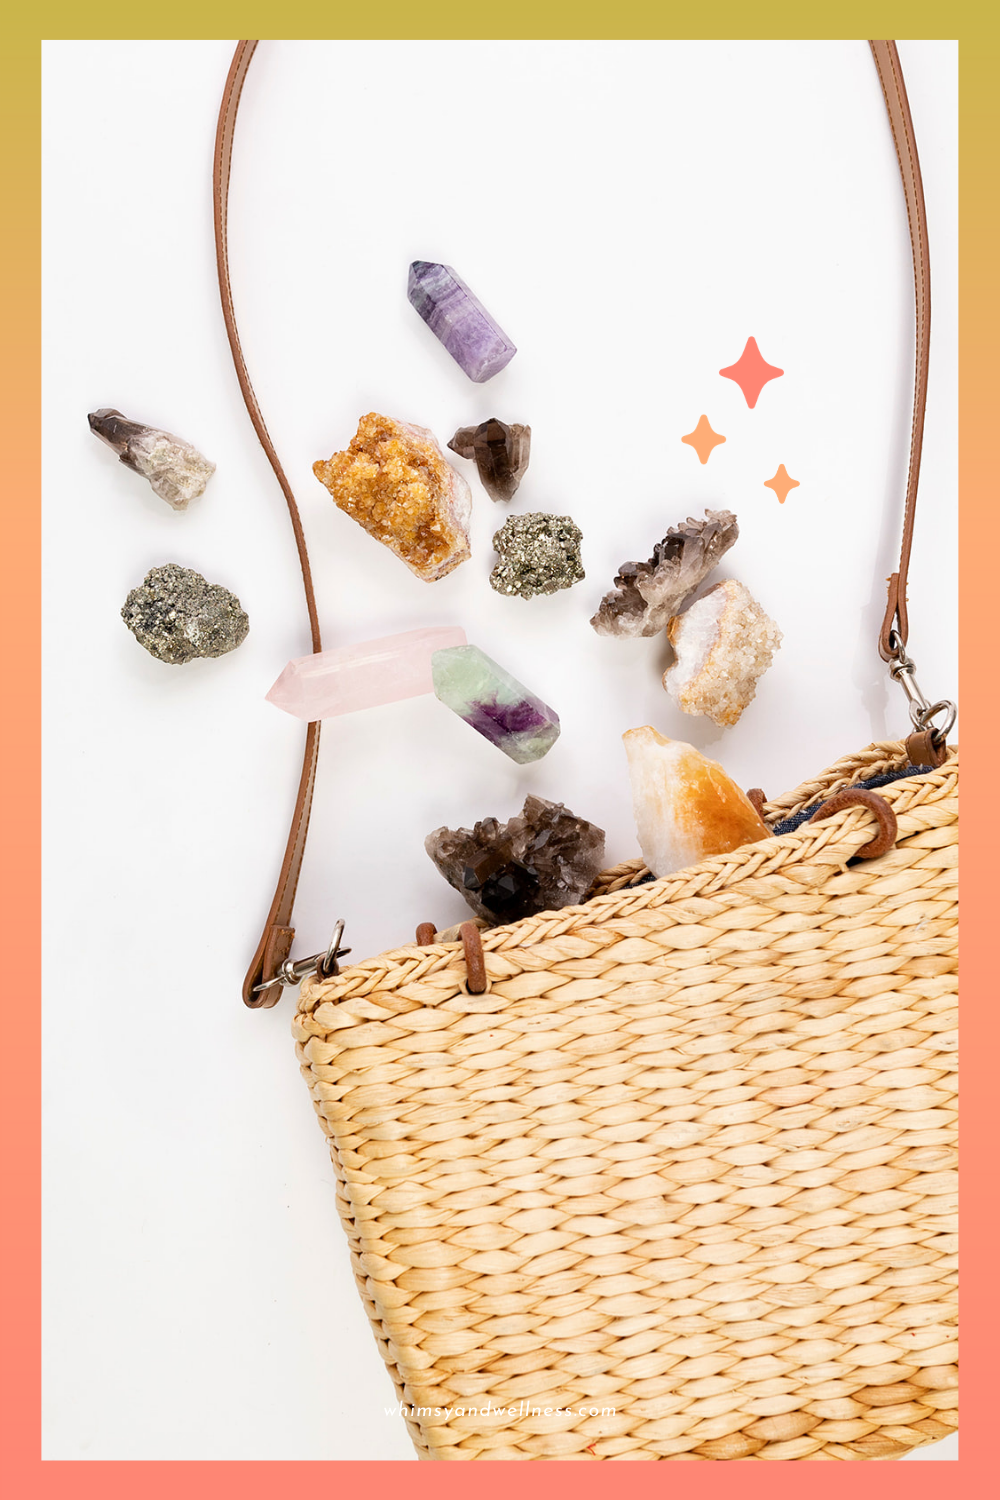 handheld crystals spilling out of wicker purse